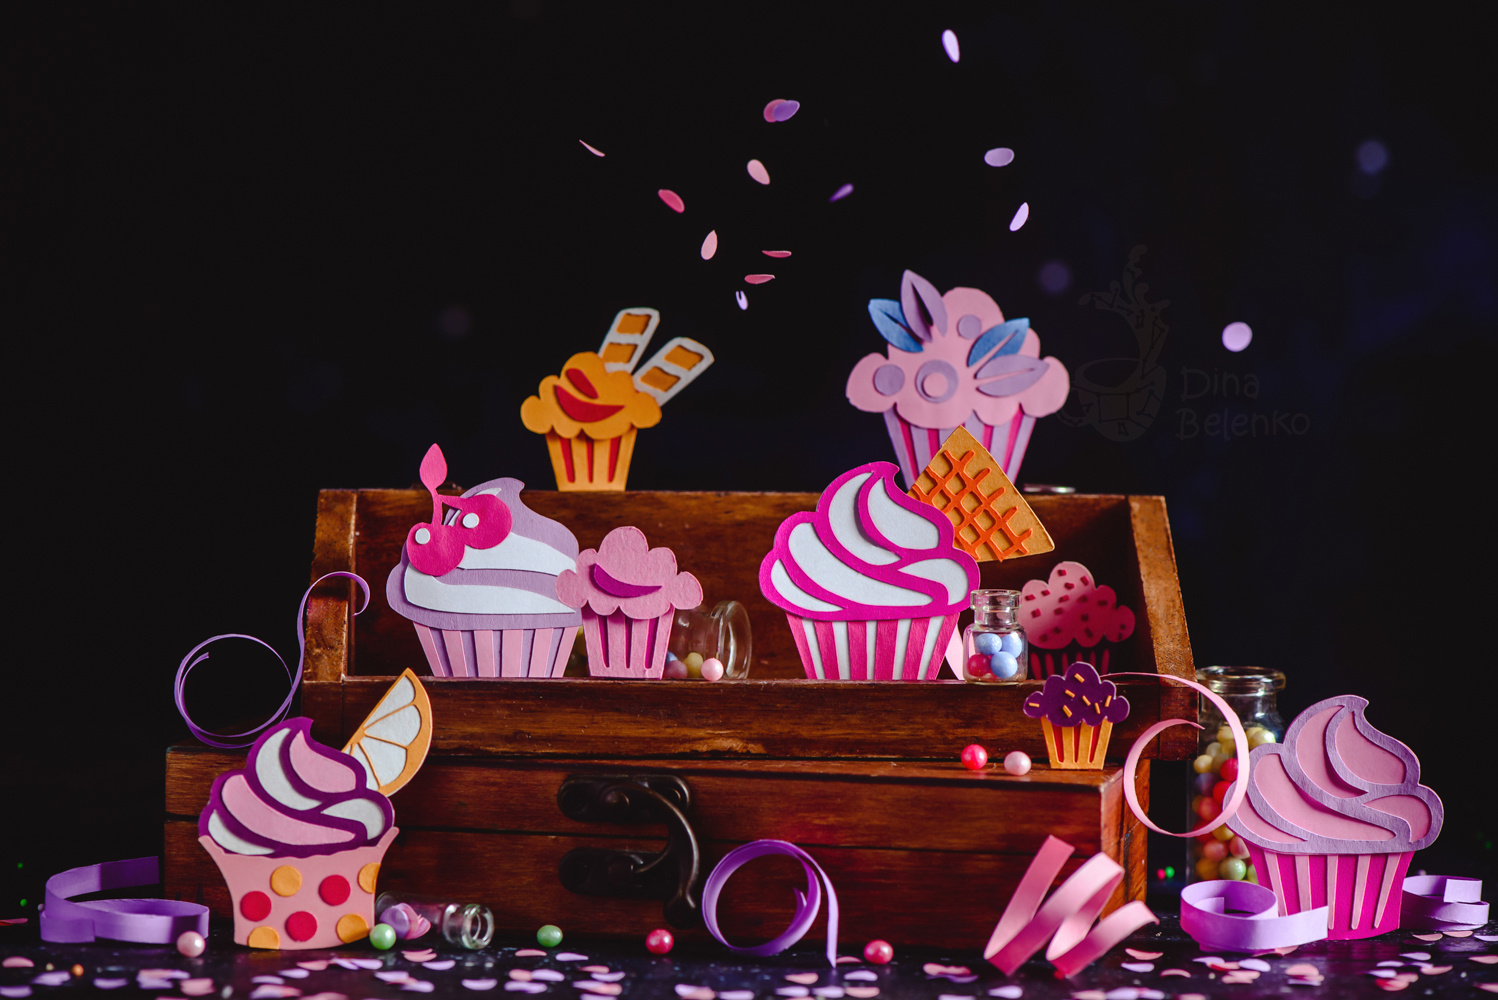 Bite the Cupcake. Part 2 by Dina Belenko